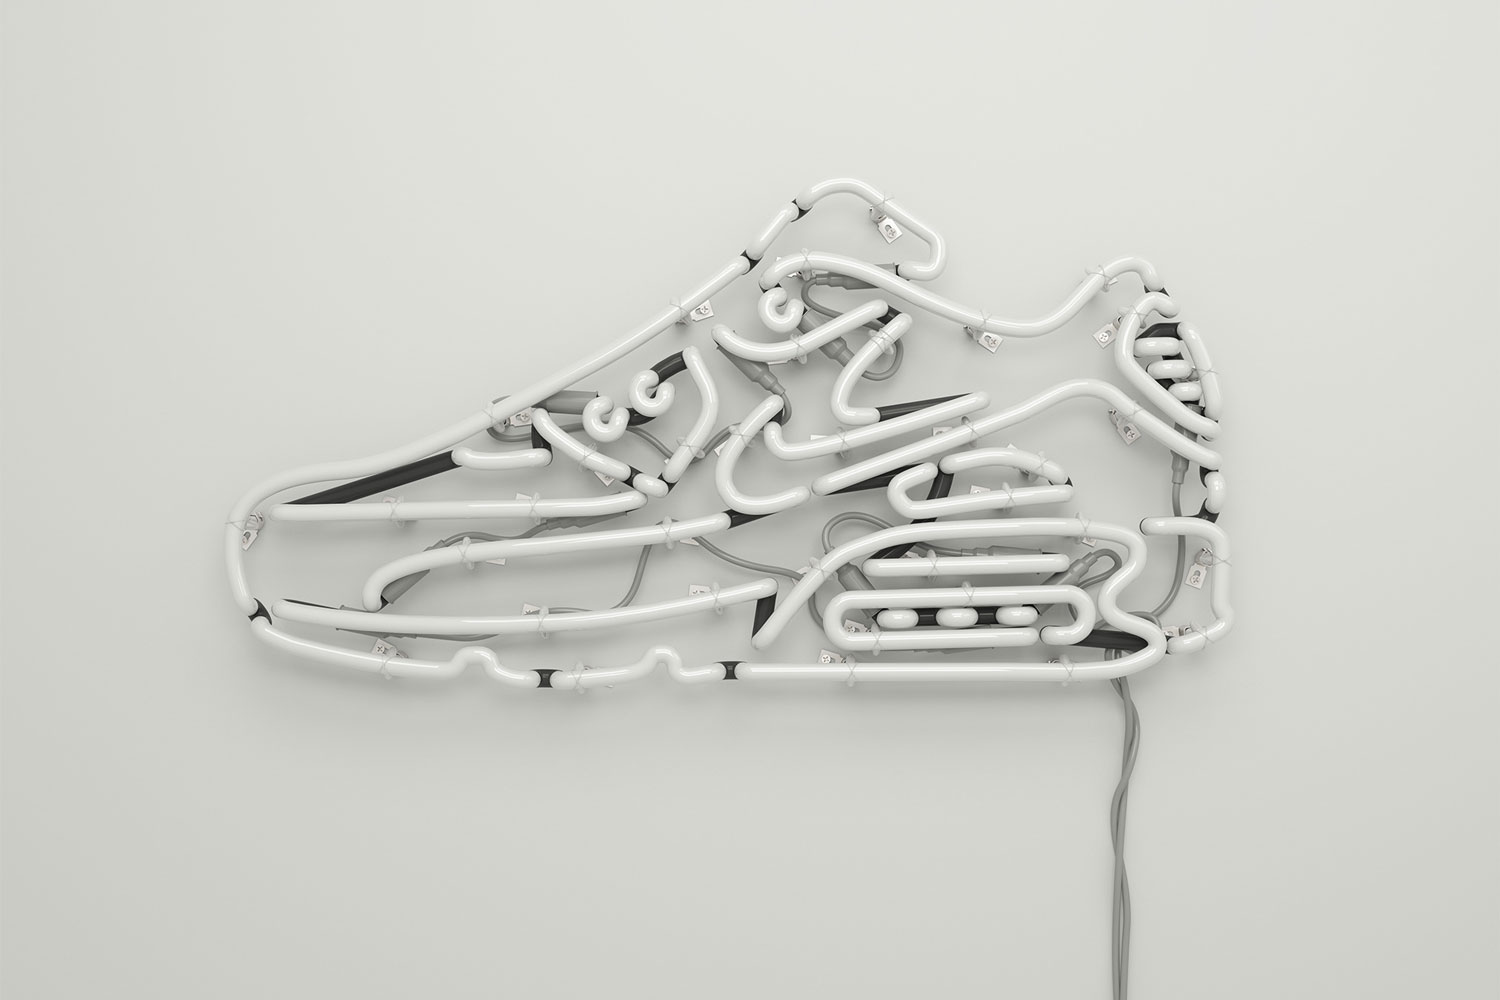 Nike AirMax Neon Art by Rizon Parein | Yellowtrace